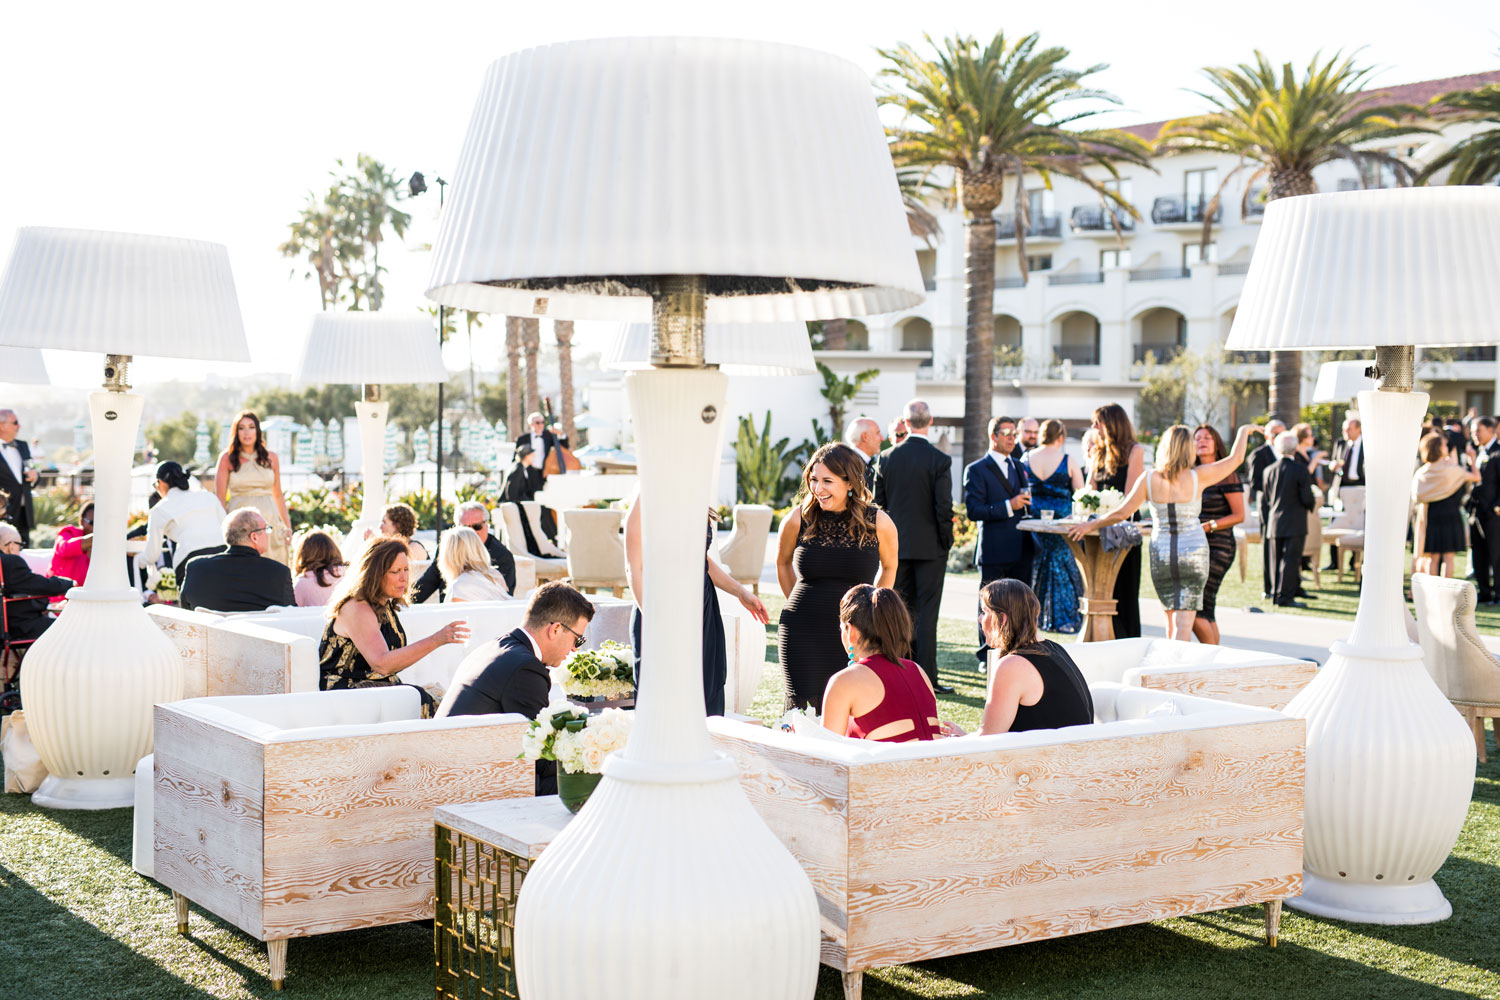 Guests at cocktail hour outside inside weddings spring 2018 issue samuel lippke studios international event company revelry event designers